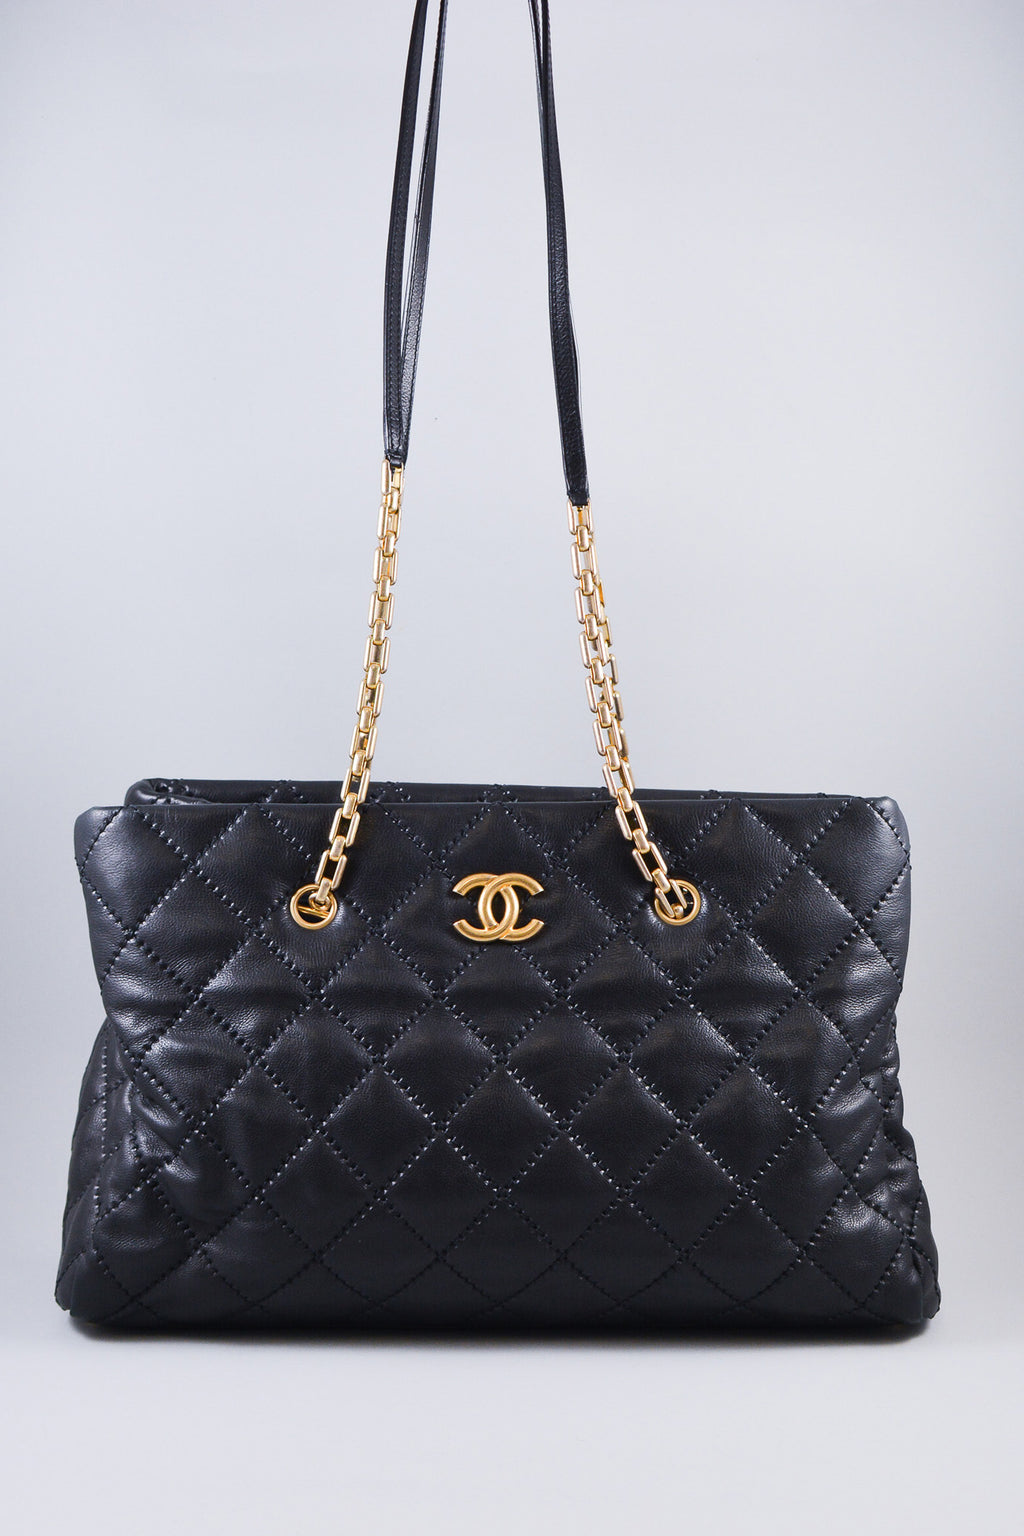 Chanel Black Large CC Crown Tote w/ Gold Hardware